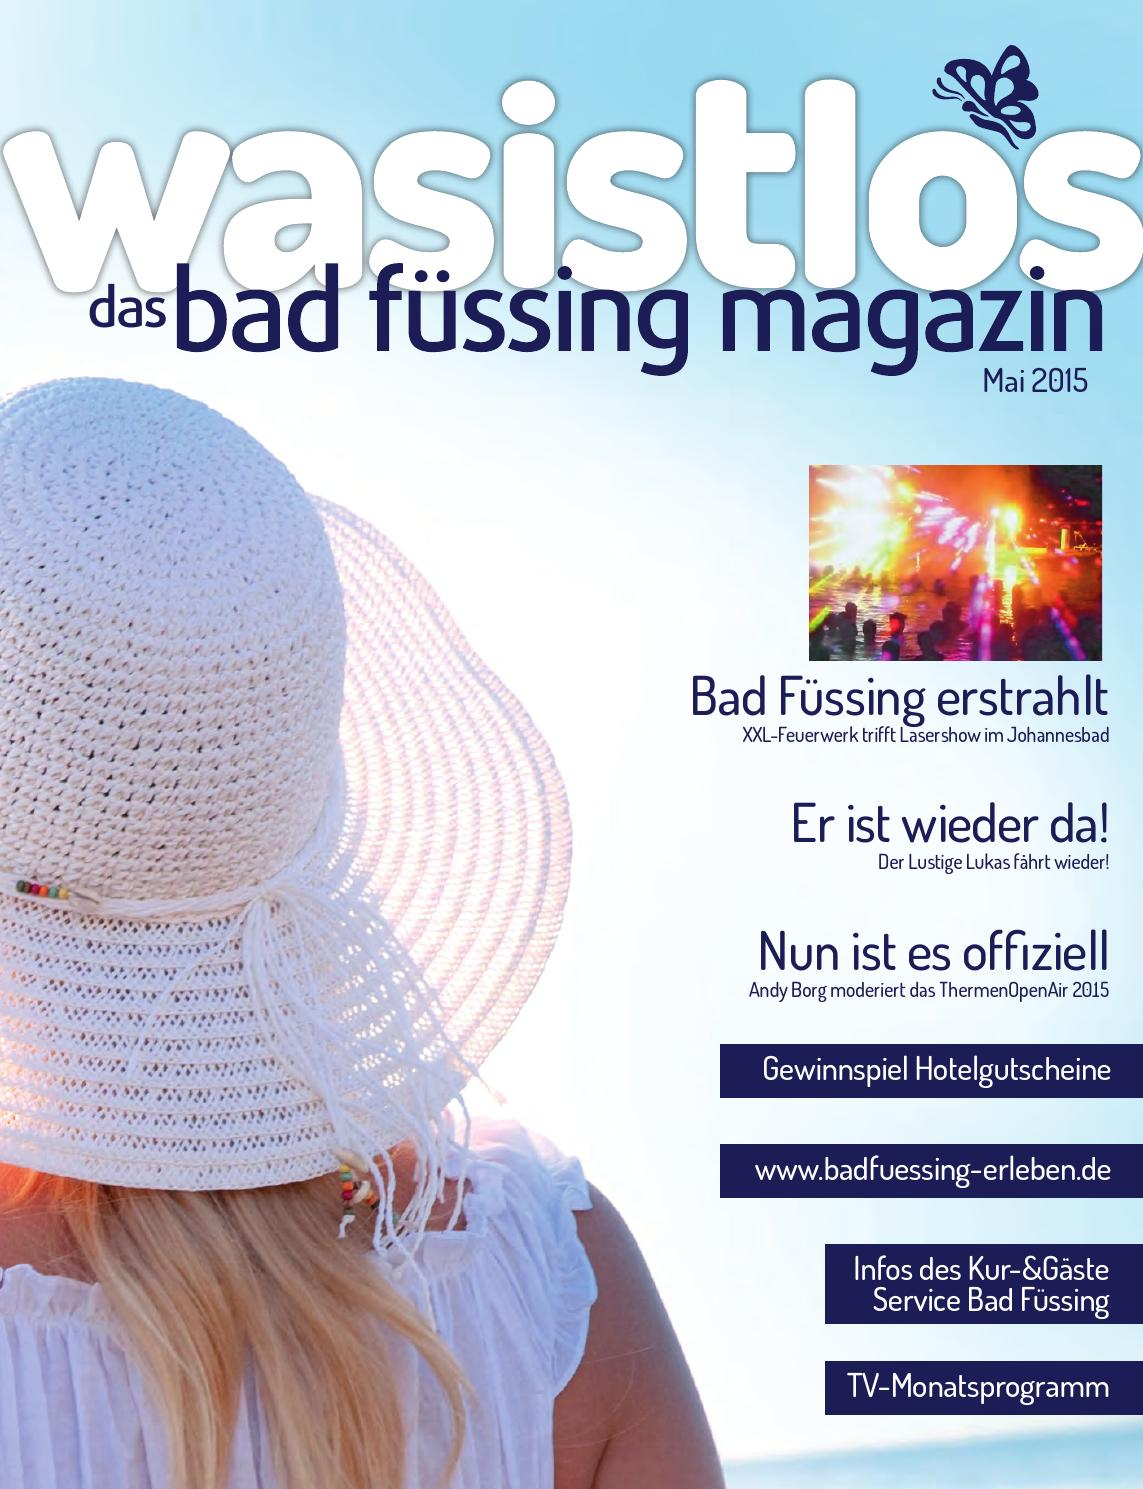 Landhaus Putz Bad Füssing Bad Füssing Magazin Wasistlos Aktuell Bad Füssing